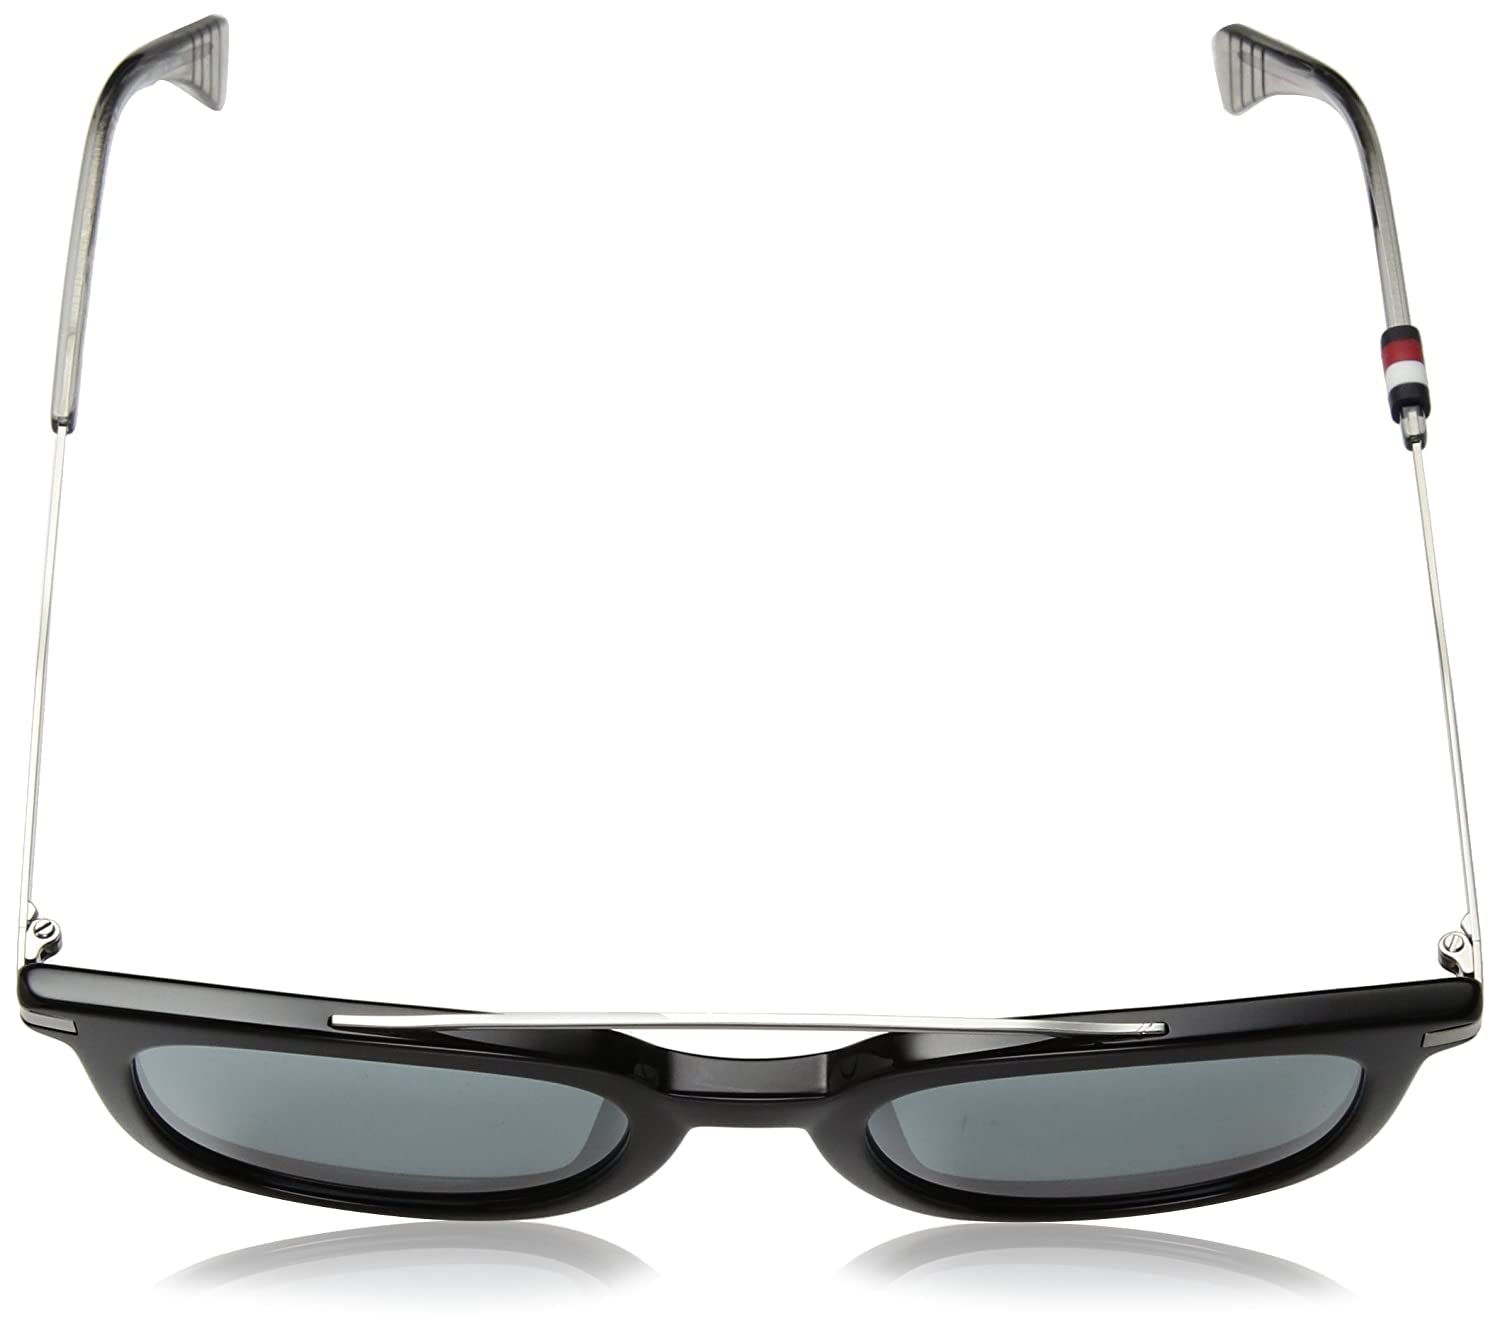 Tommy Hilfiger Herren Sonnenbrille TH 1515/S T4 807, Black/Gy Grey, 49